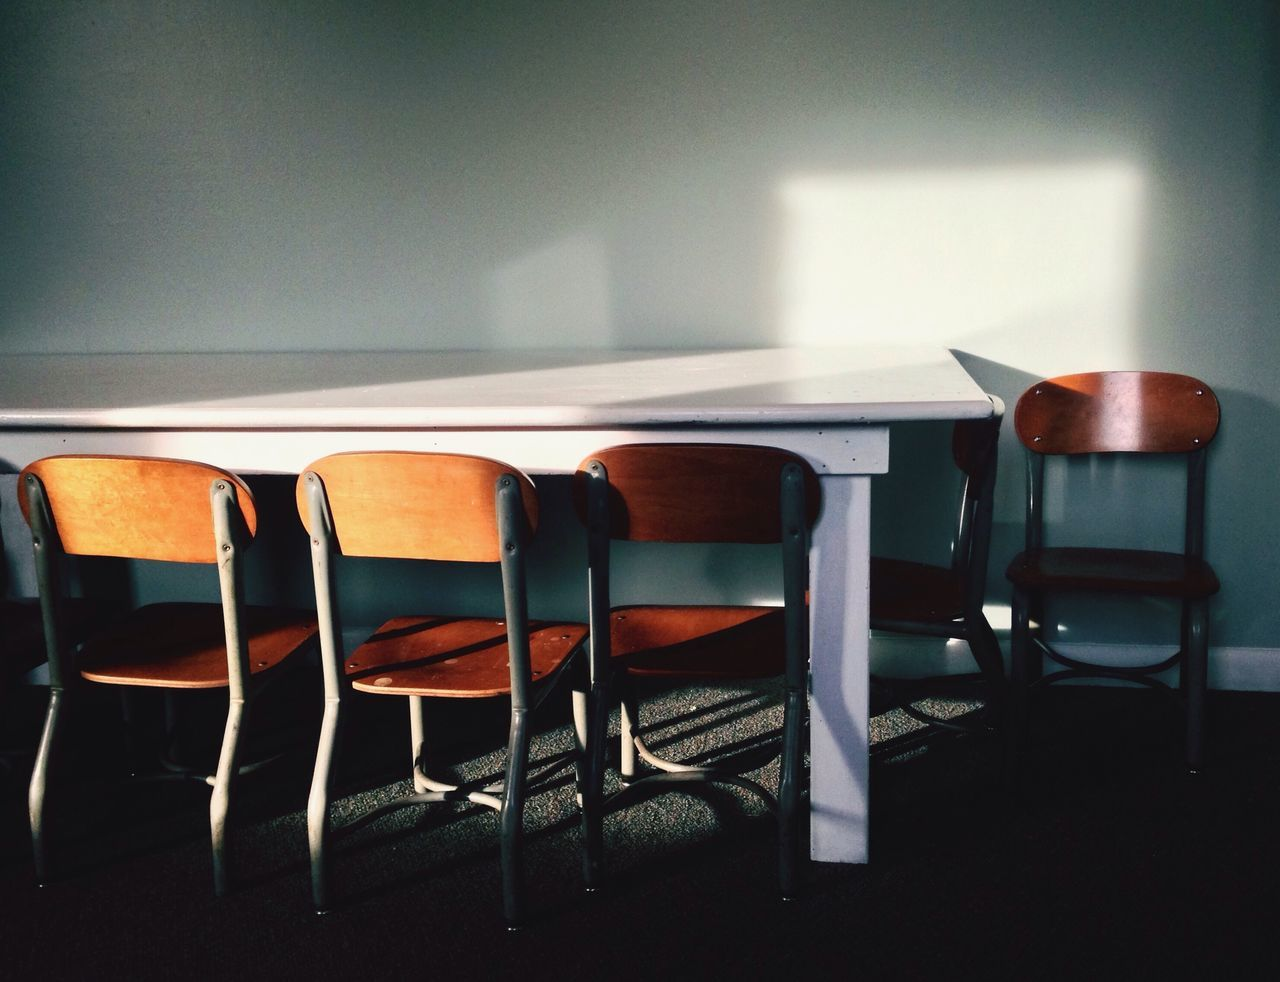 Beautiful stock photos of school, chair, empty, absence, indoors